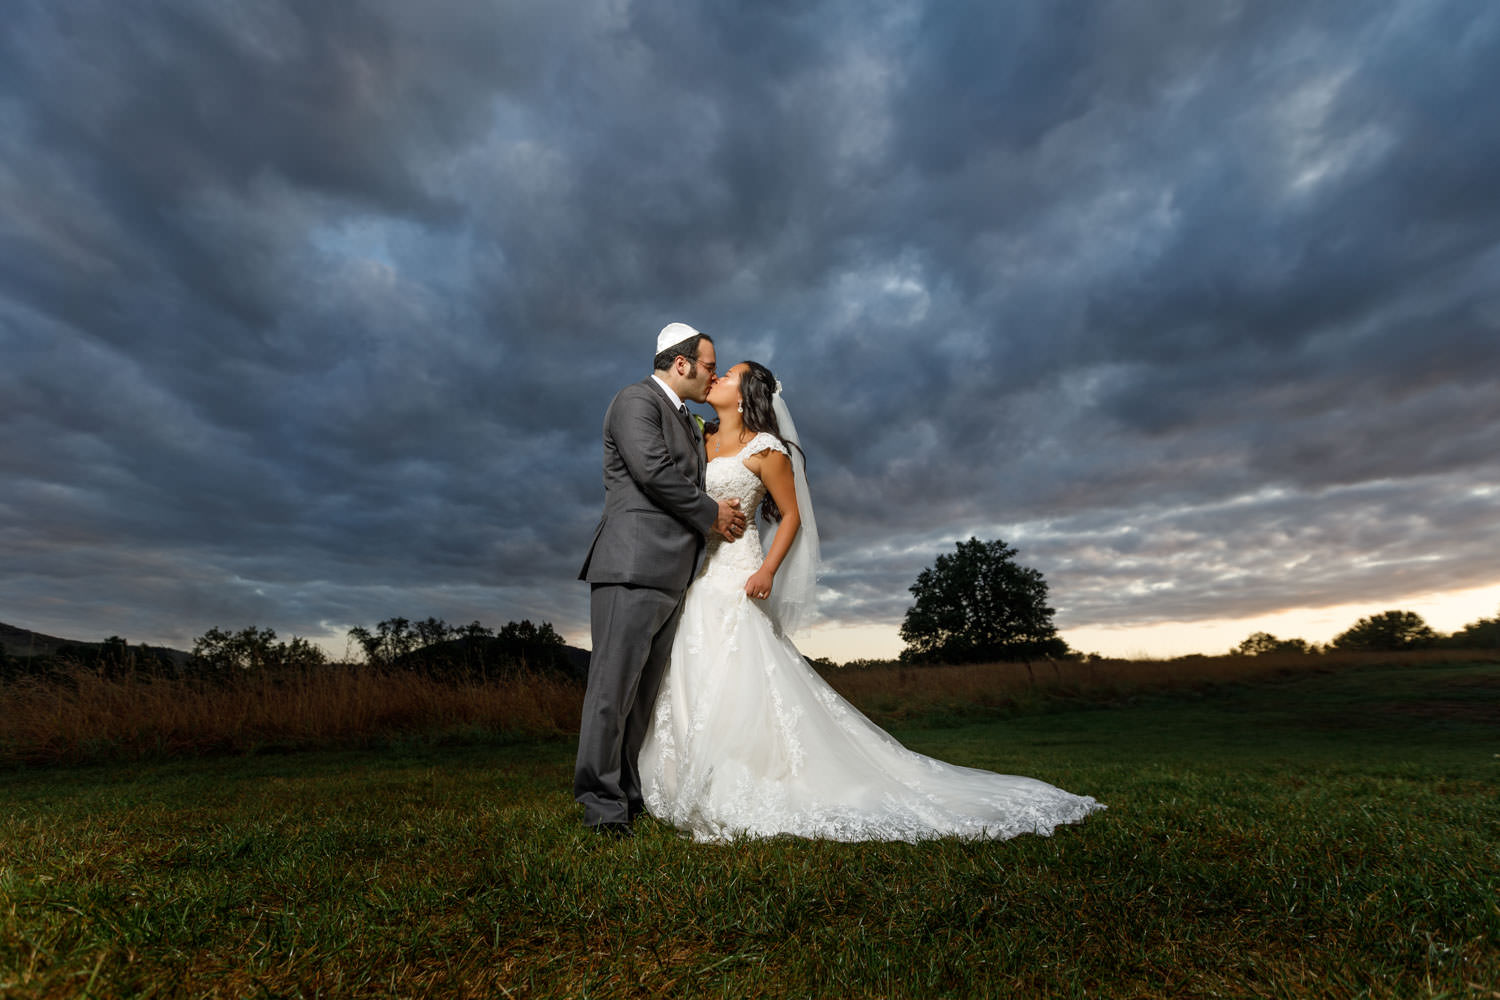 Groom with yamaka kissing bride in field with dramatic sky in background